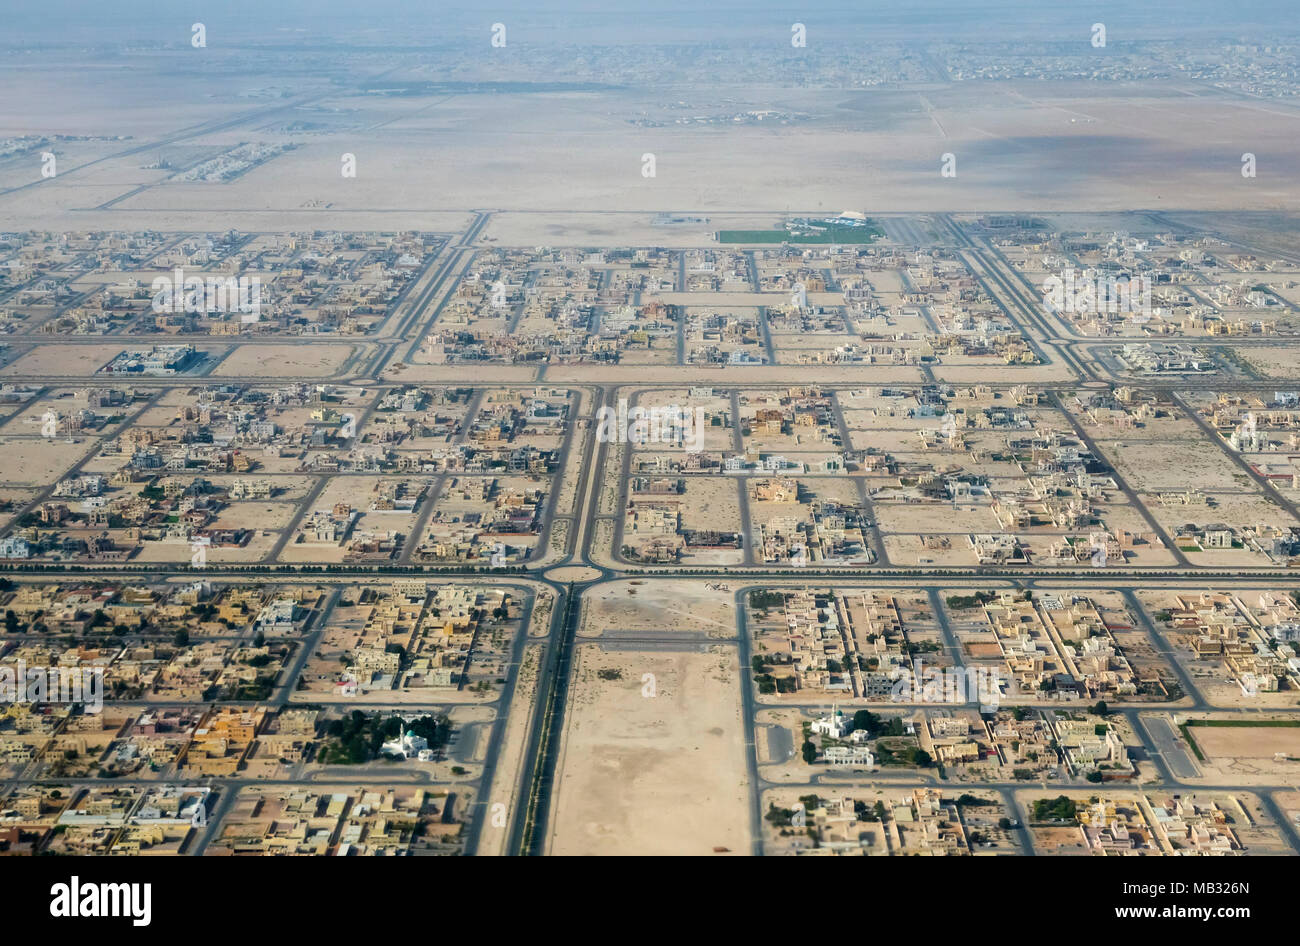 Ariel view of the suburbs of Abu Dhabi, United Arab Emirates - Stock Image